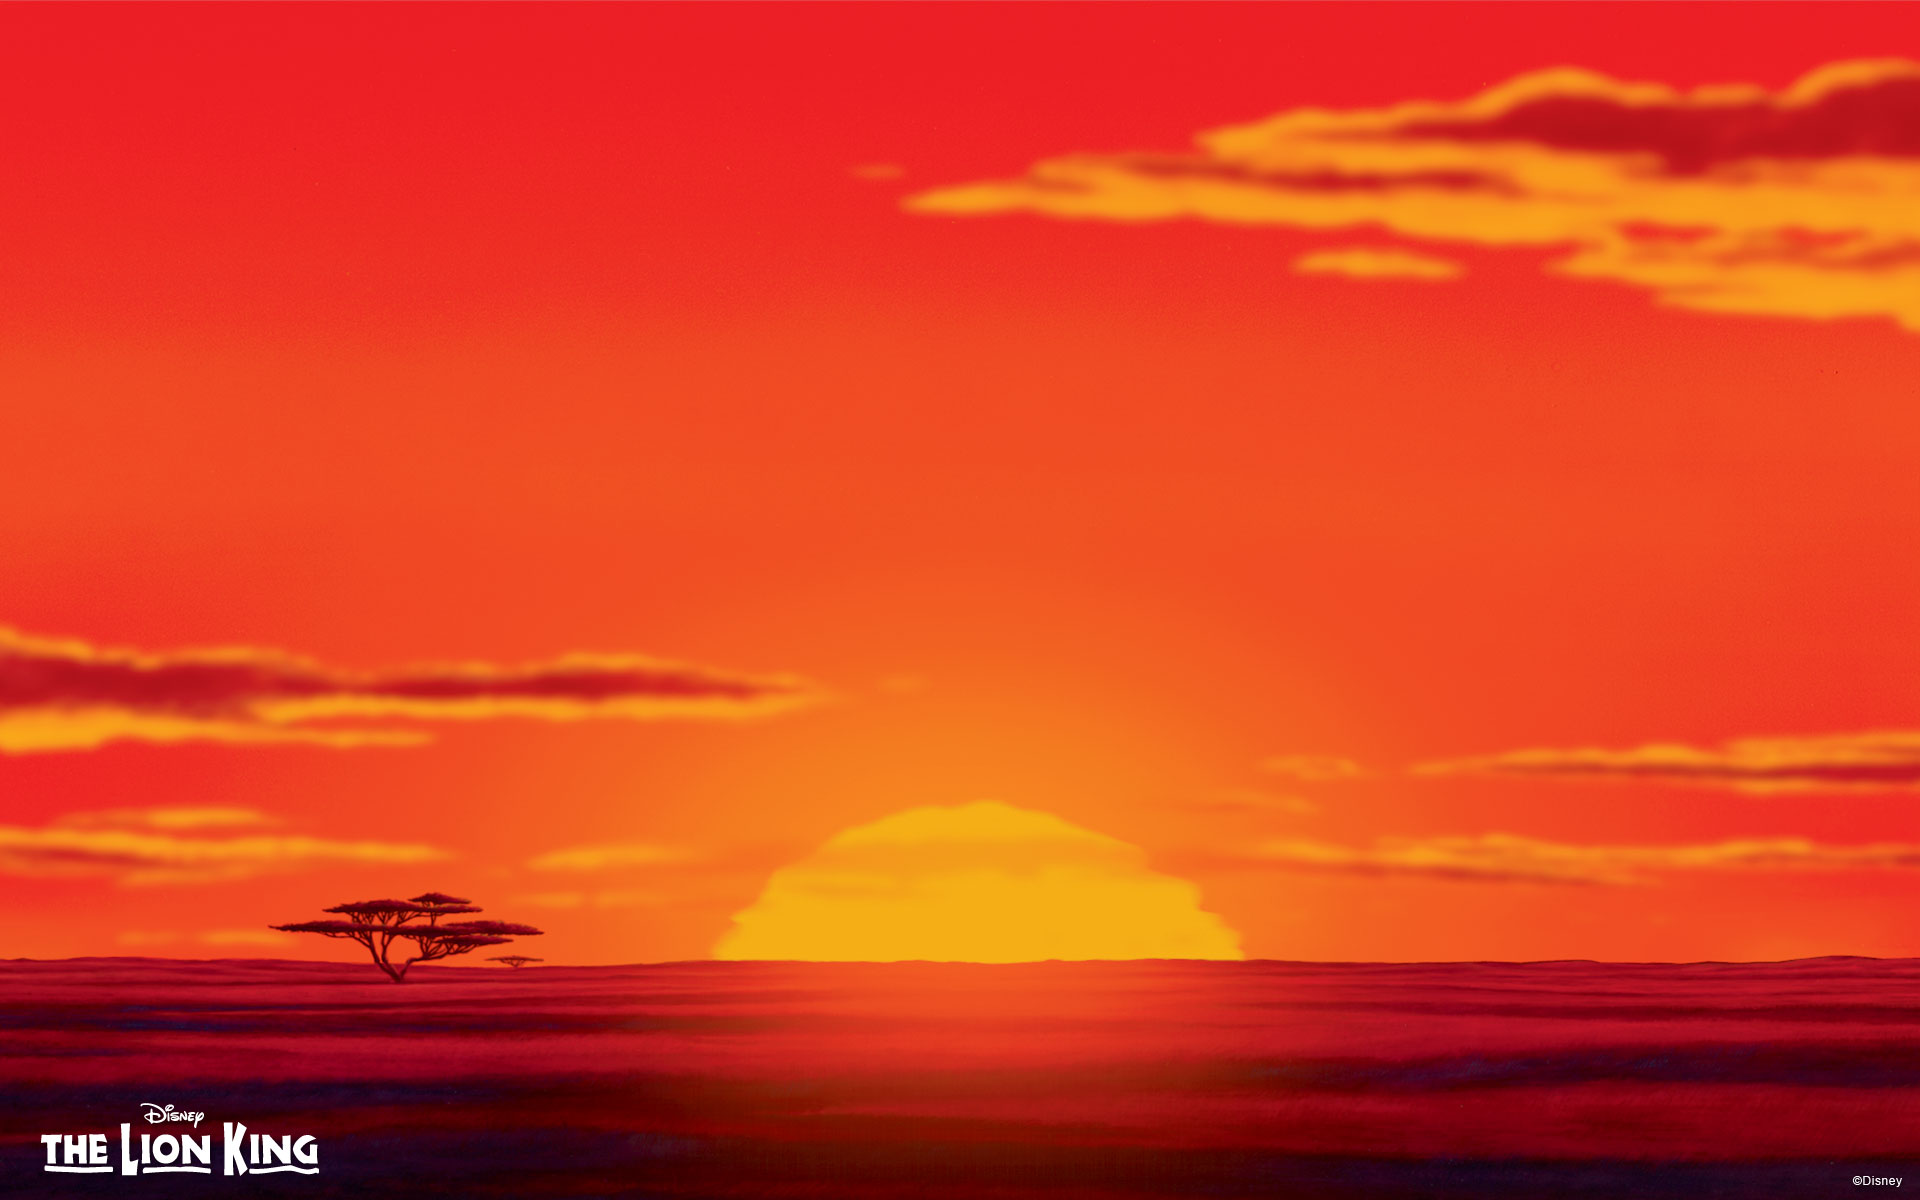 The Lion King Wallpaper - Lion King Background Hd , HD Wallpaper & Backgrounds